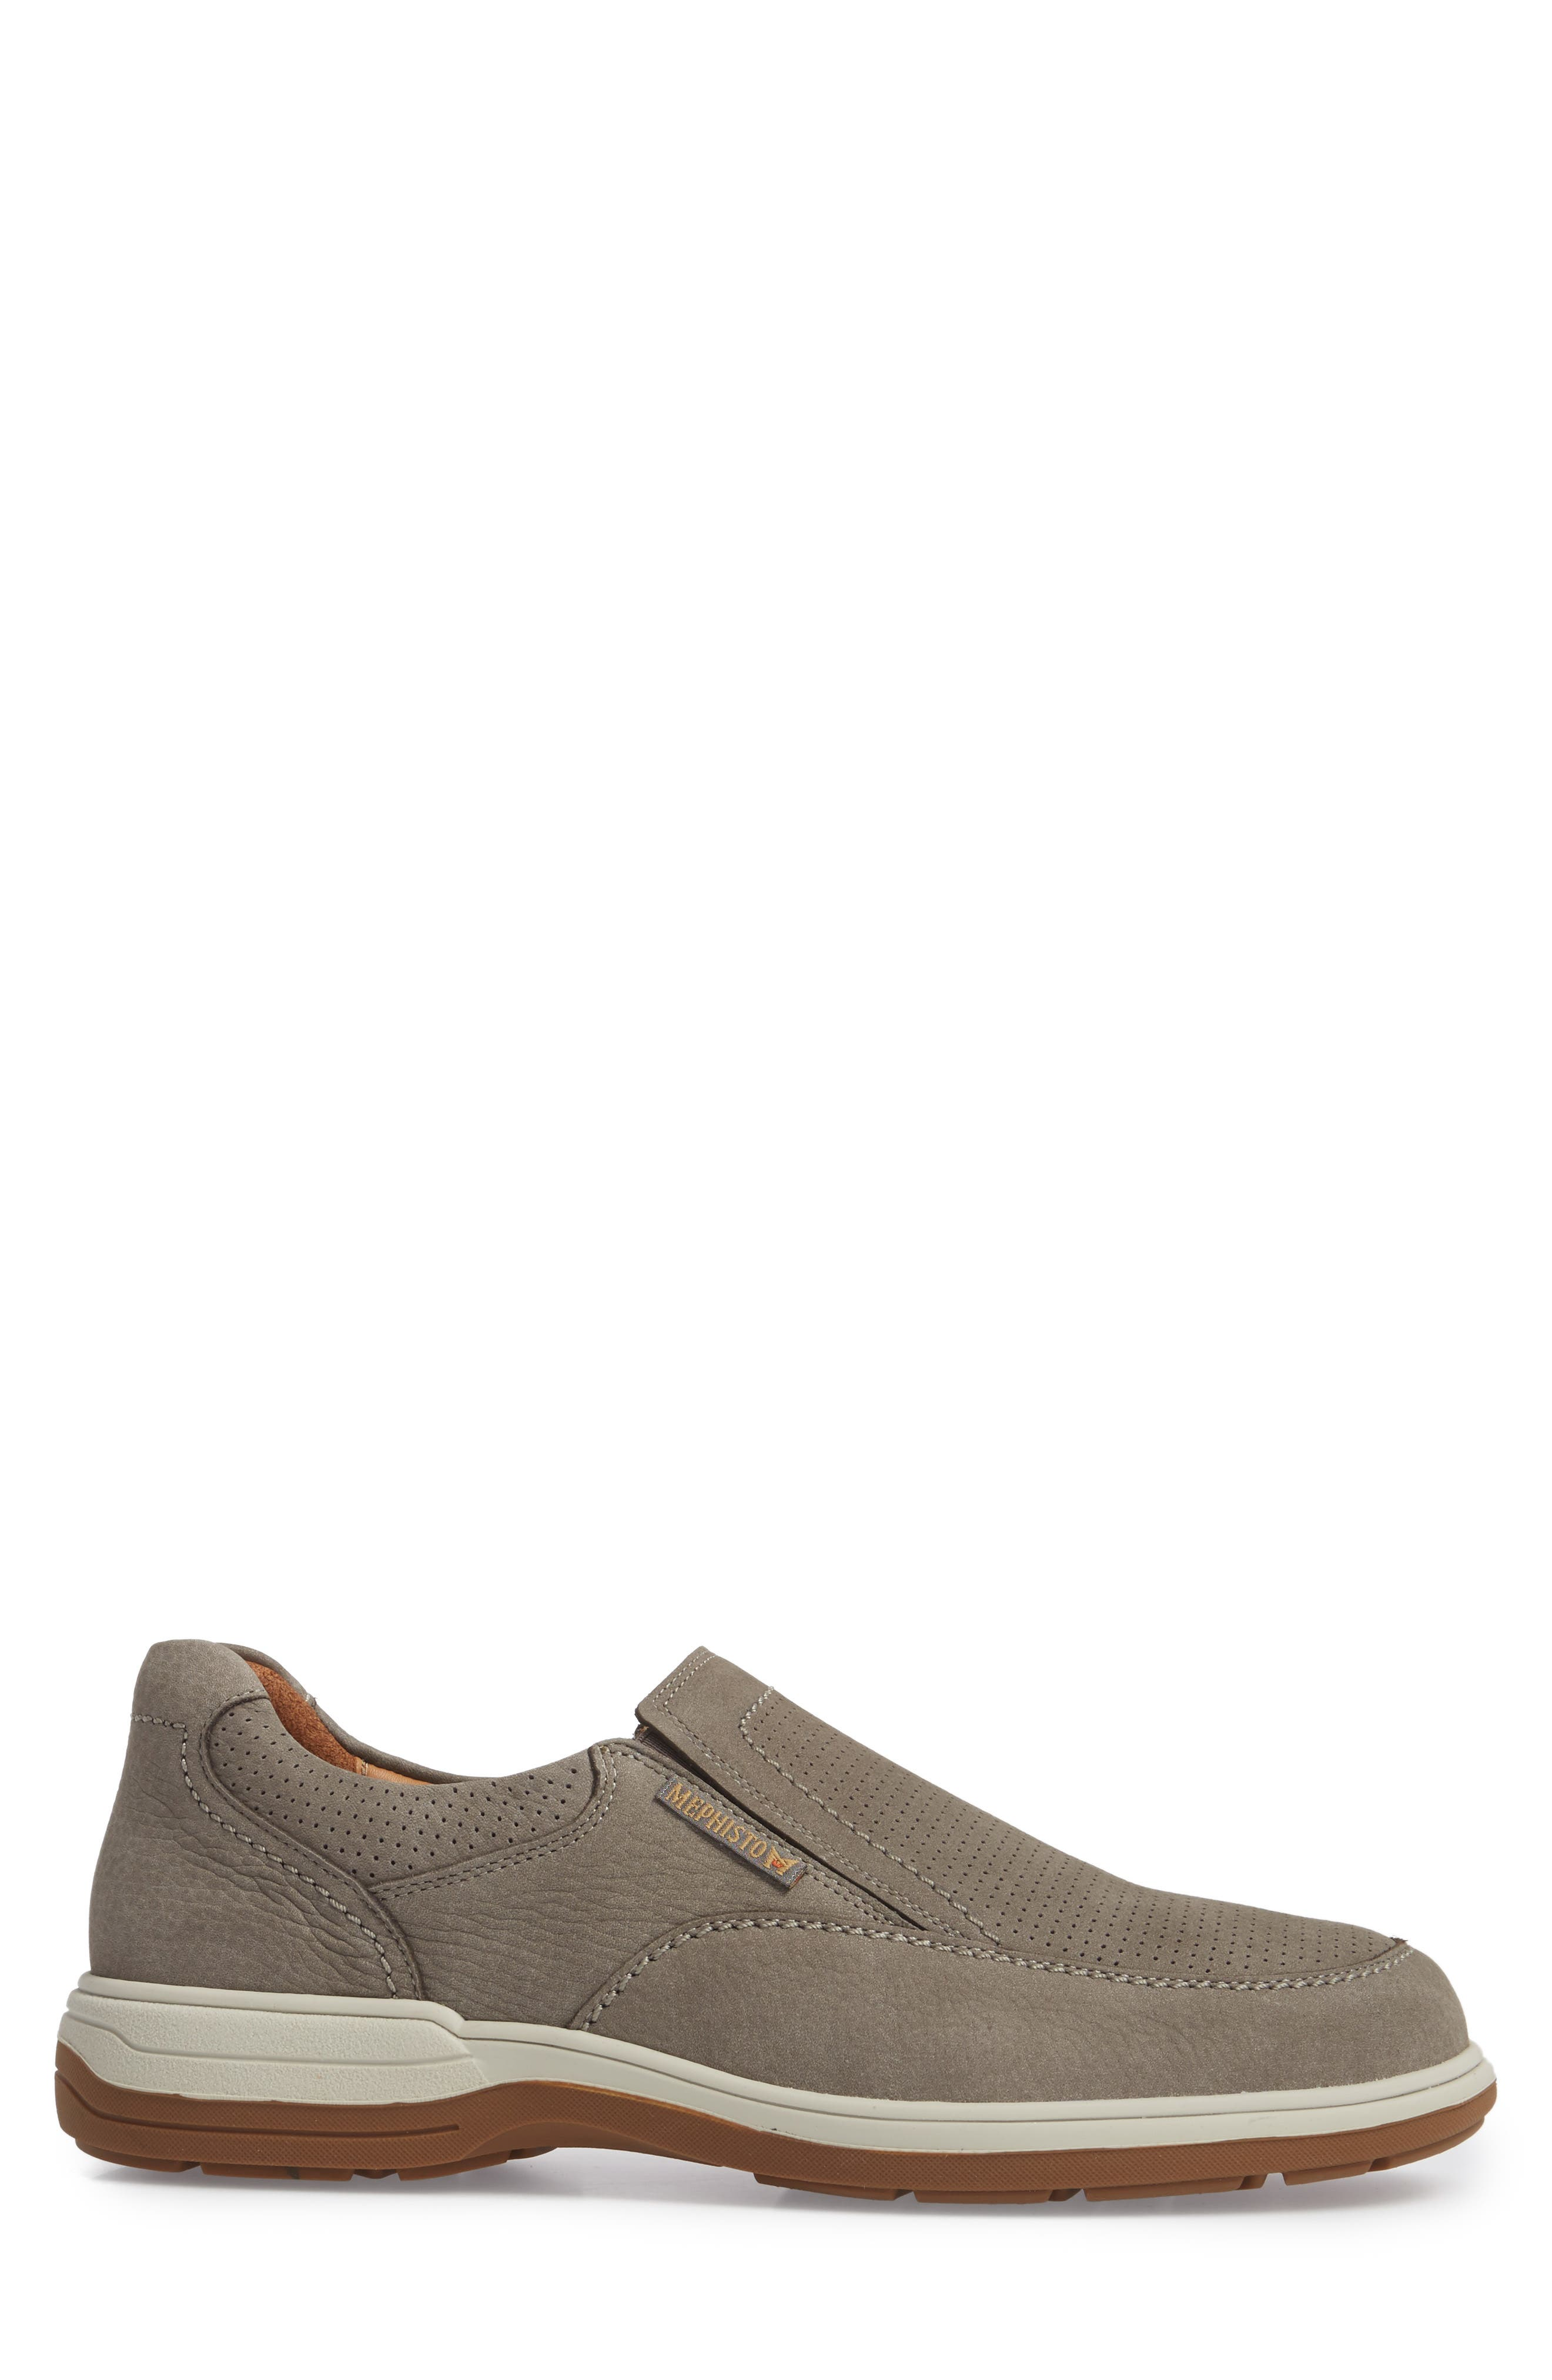 Davy Perforated Slip-On Sneaker,                             Alternate thumbnail 3, color,                             Grey